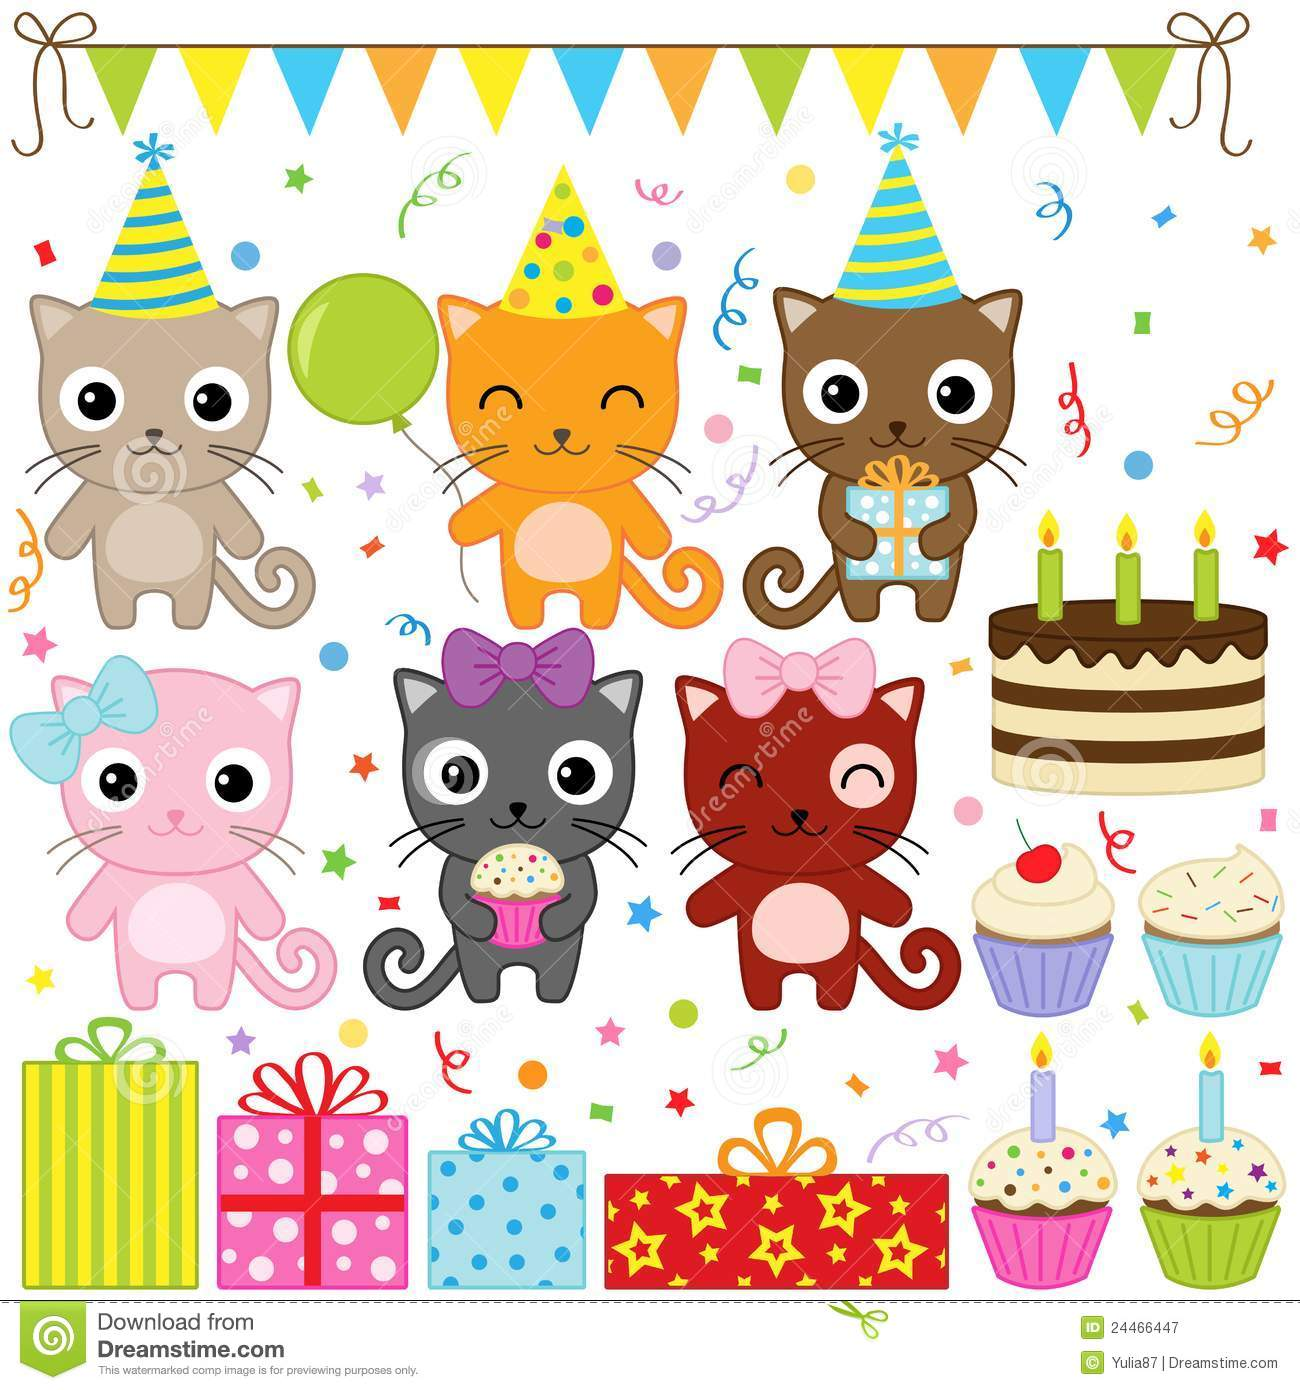 More similar stock images of birthday party cats